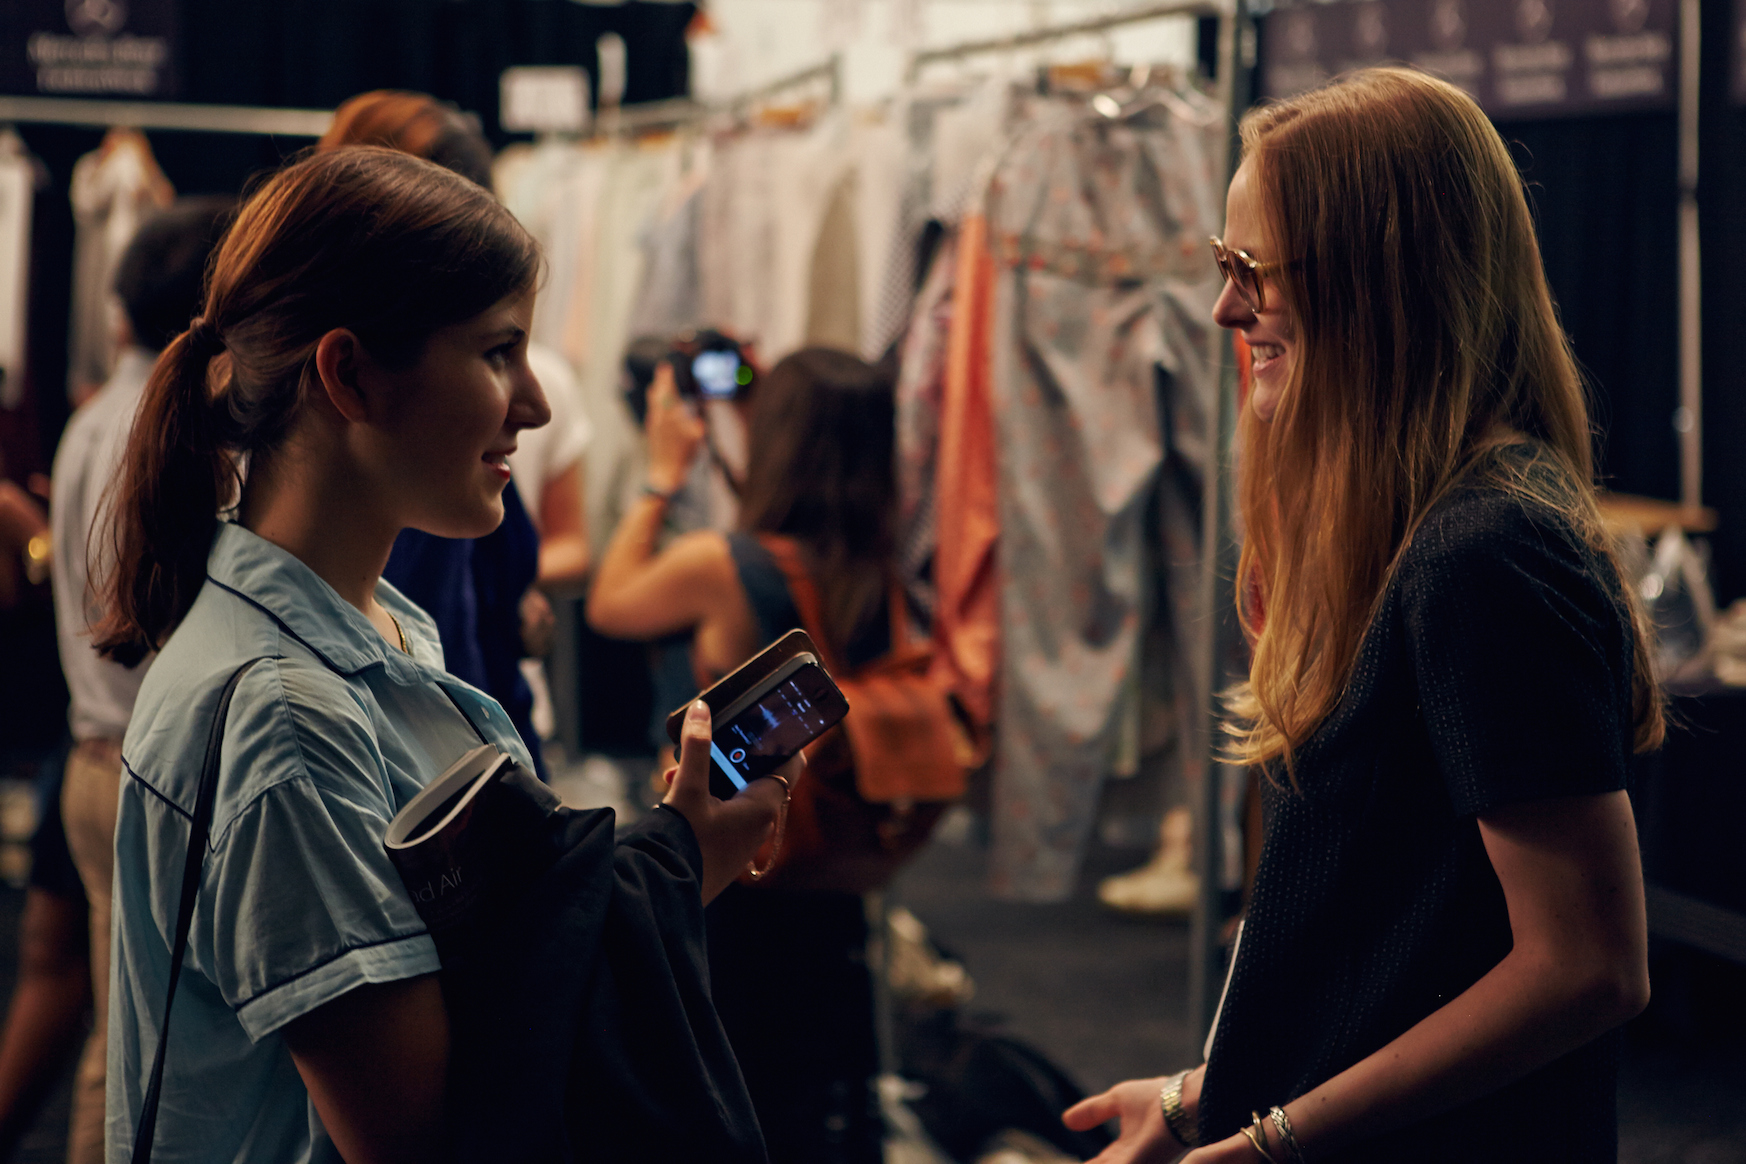 Alex Suarez backstage at the Academy of Art University New York Fashion Week Spring 2015 show, interviewing designer Madison Detro